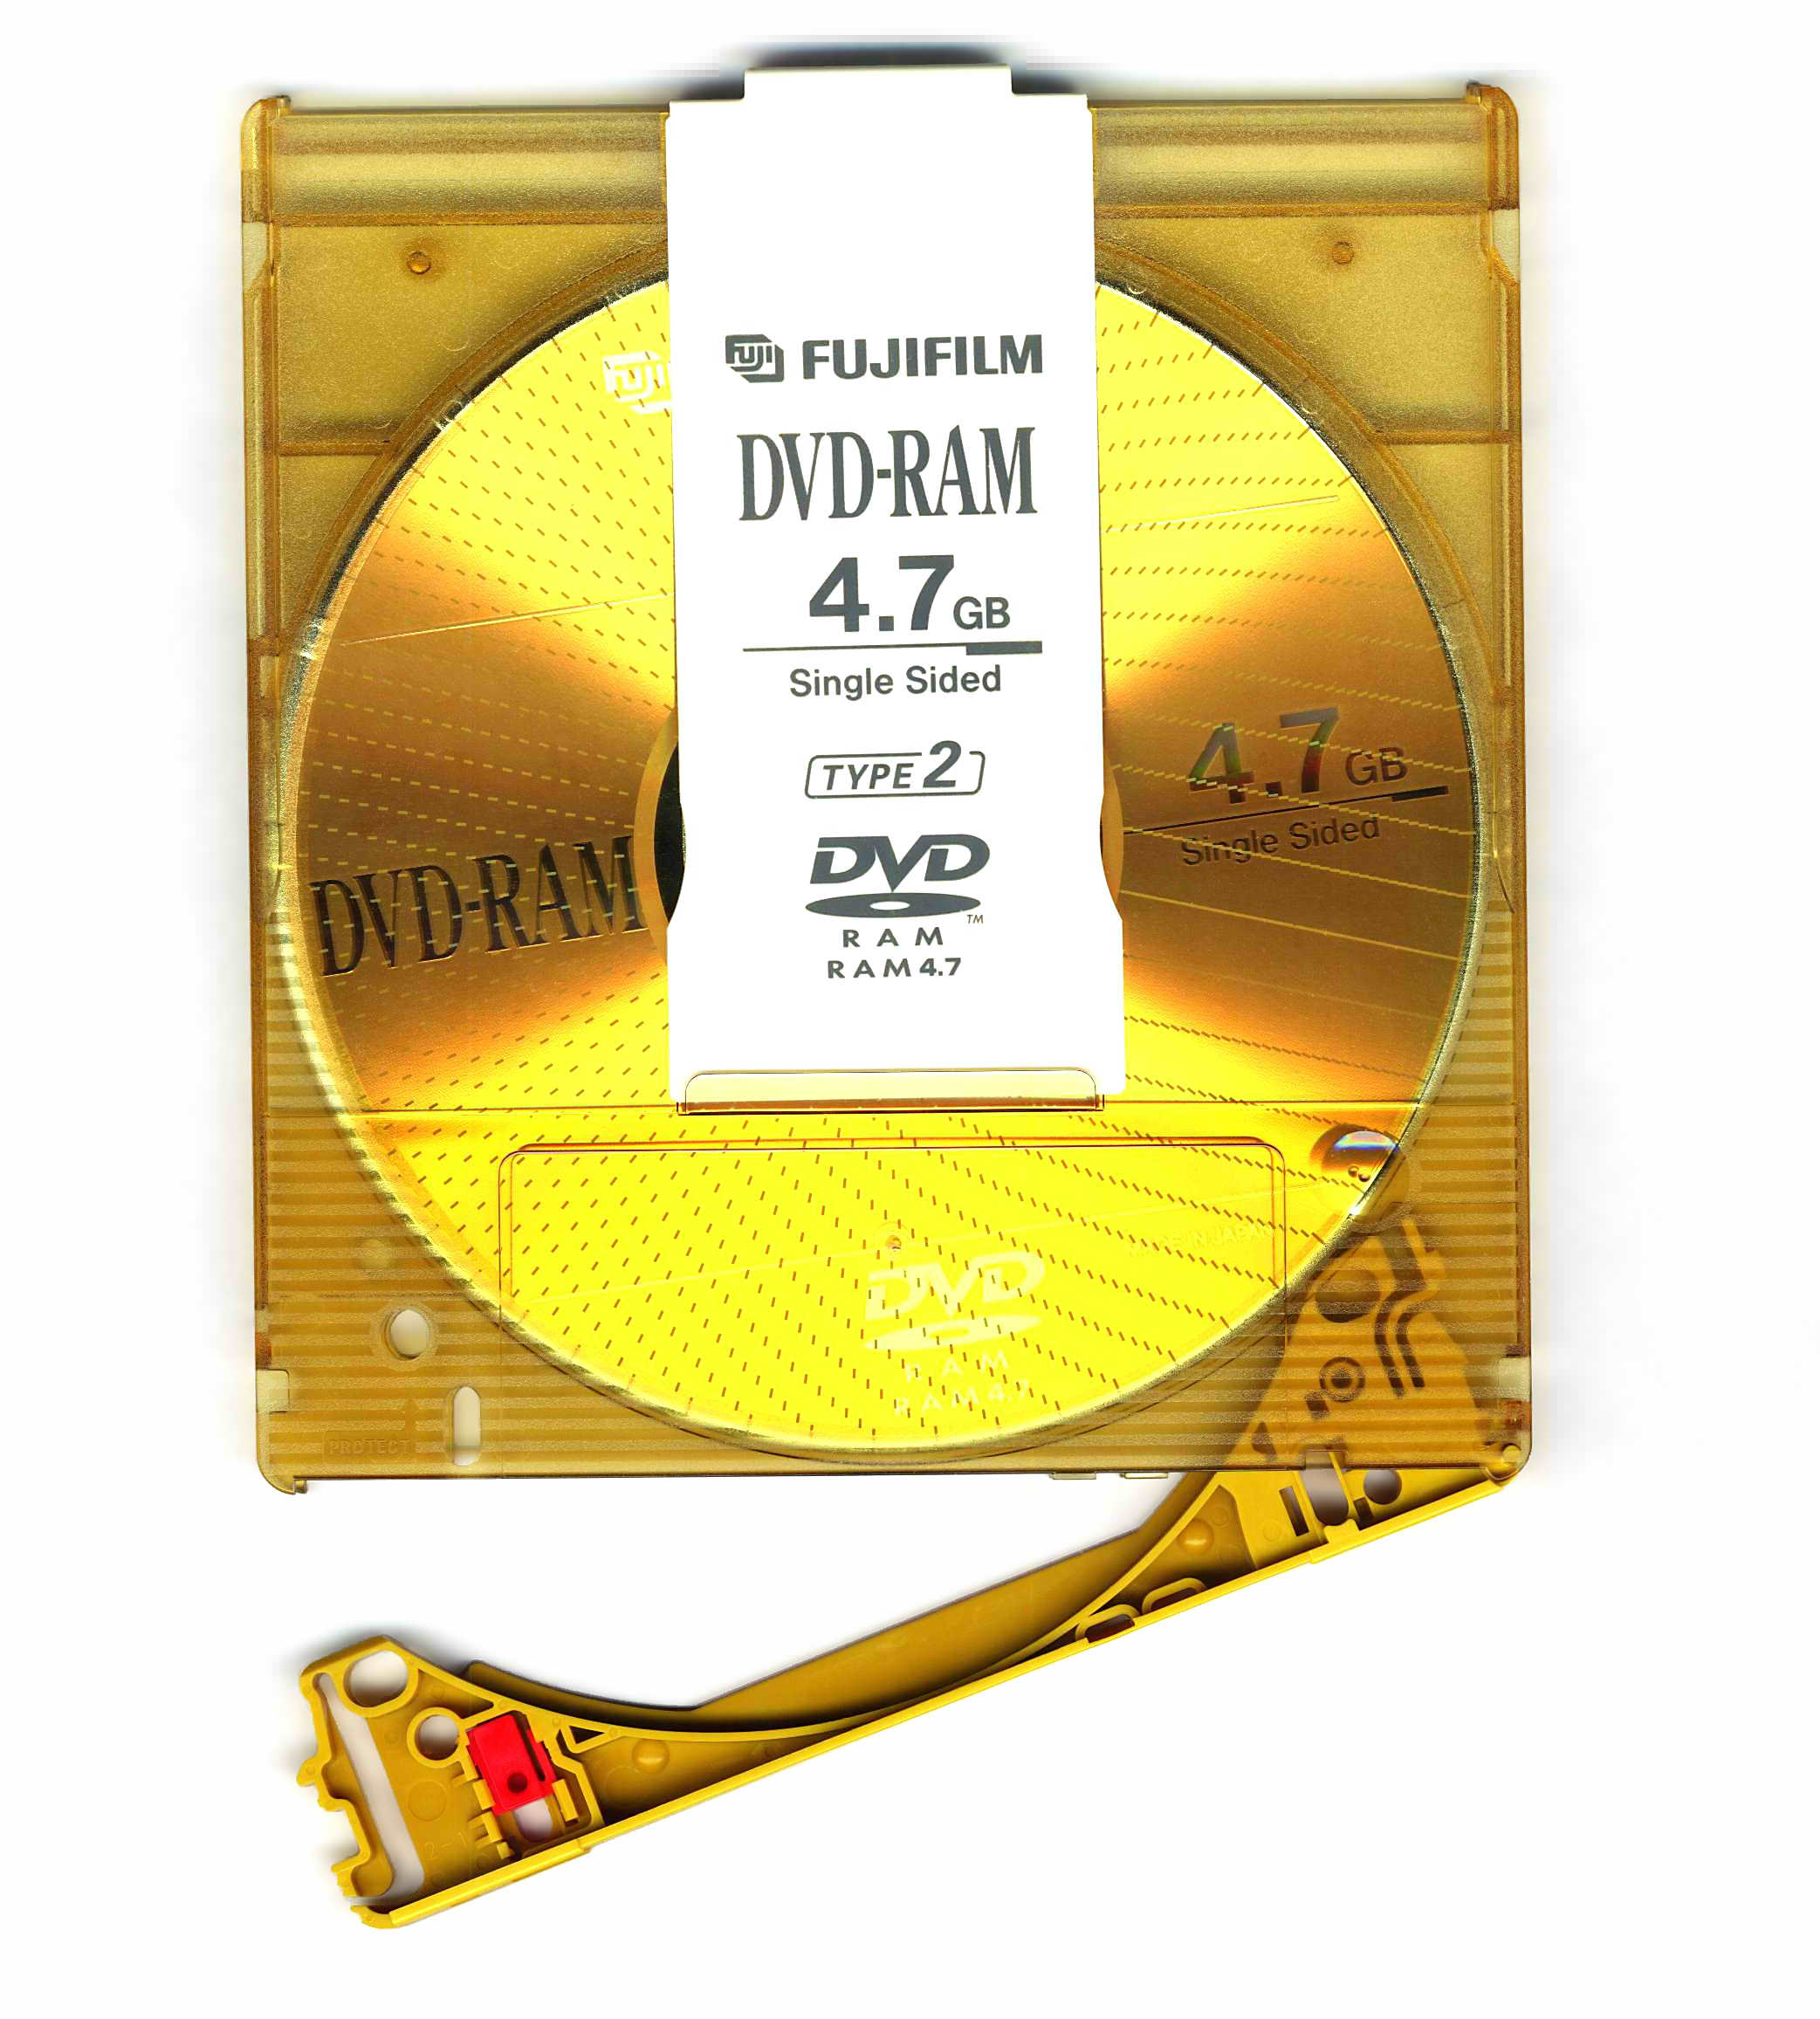 DVD-RAM_FUJIFILM_disc_removable_without_